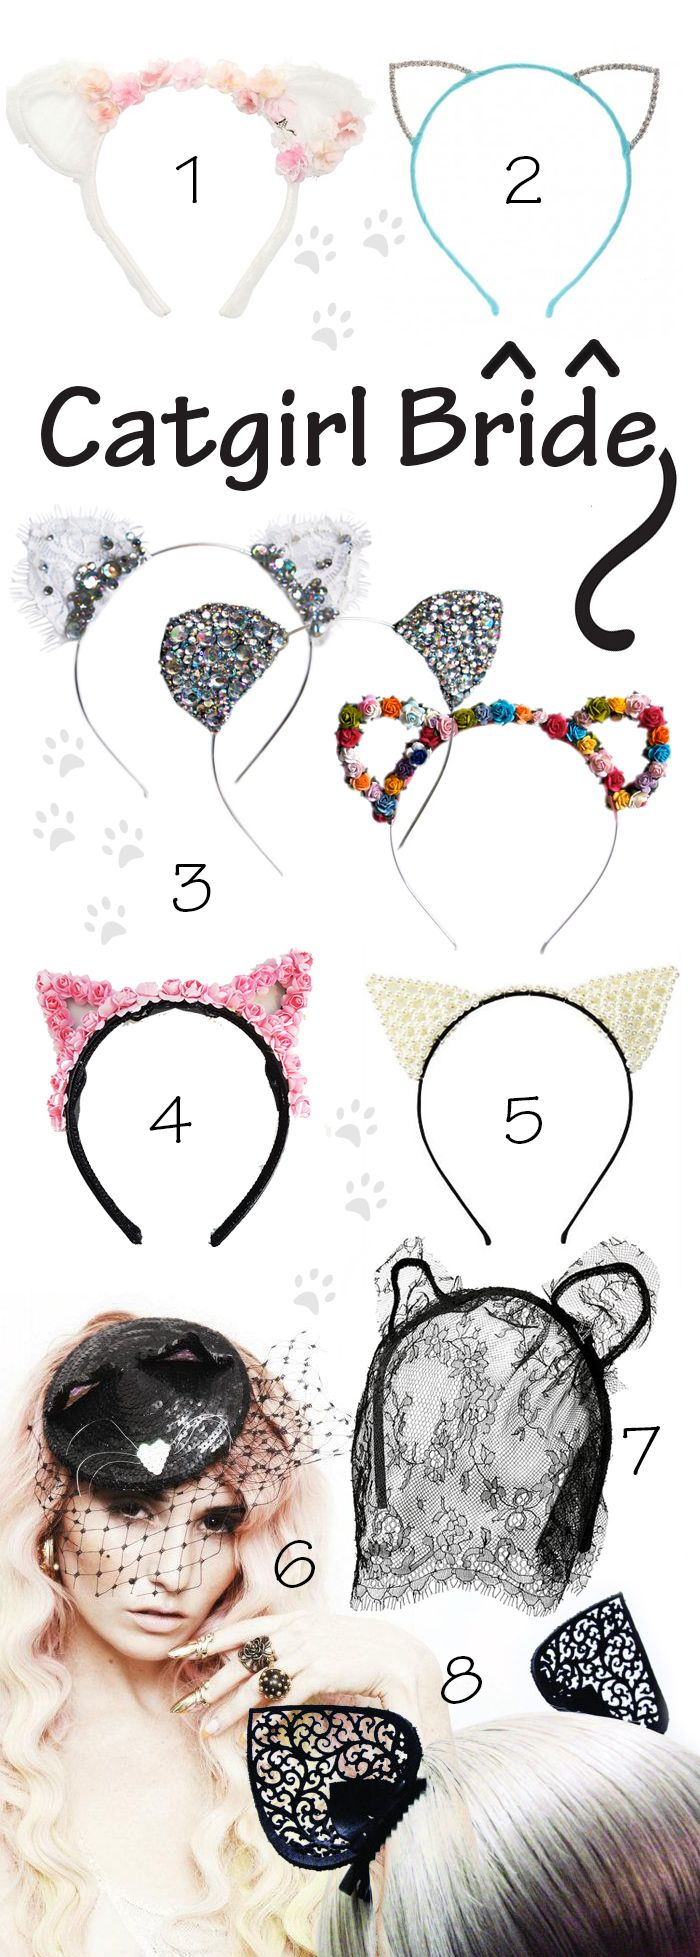 Ditch The Tiara For Cat Ears On Your Wedding Day - Check out the post for vendor links and prices.